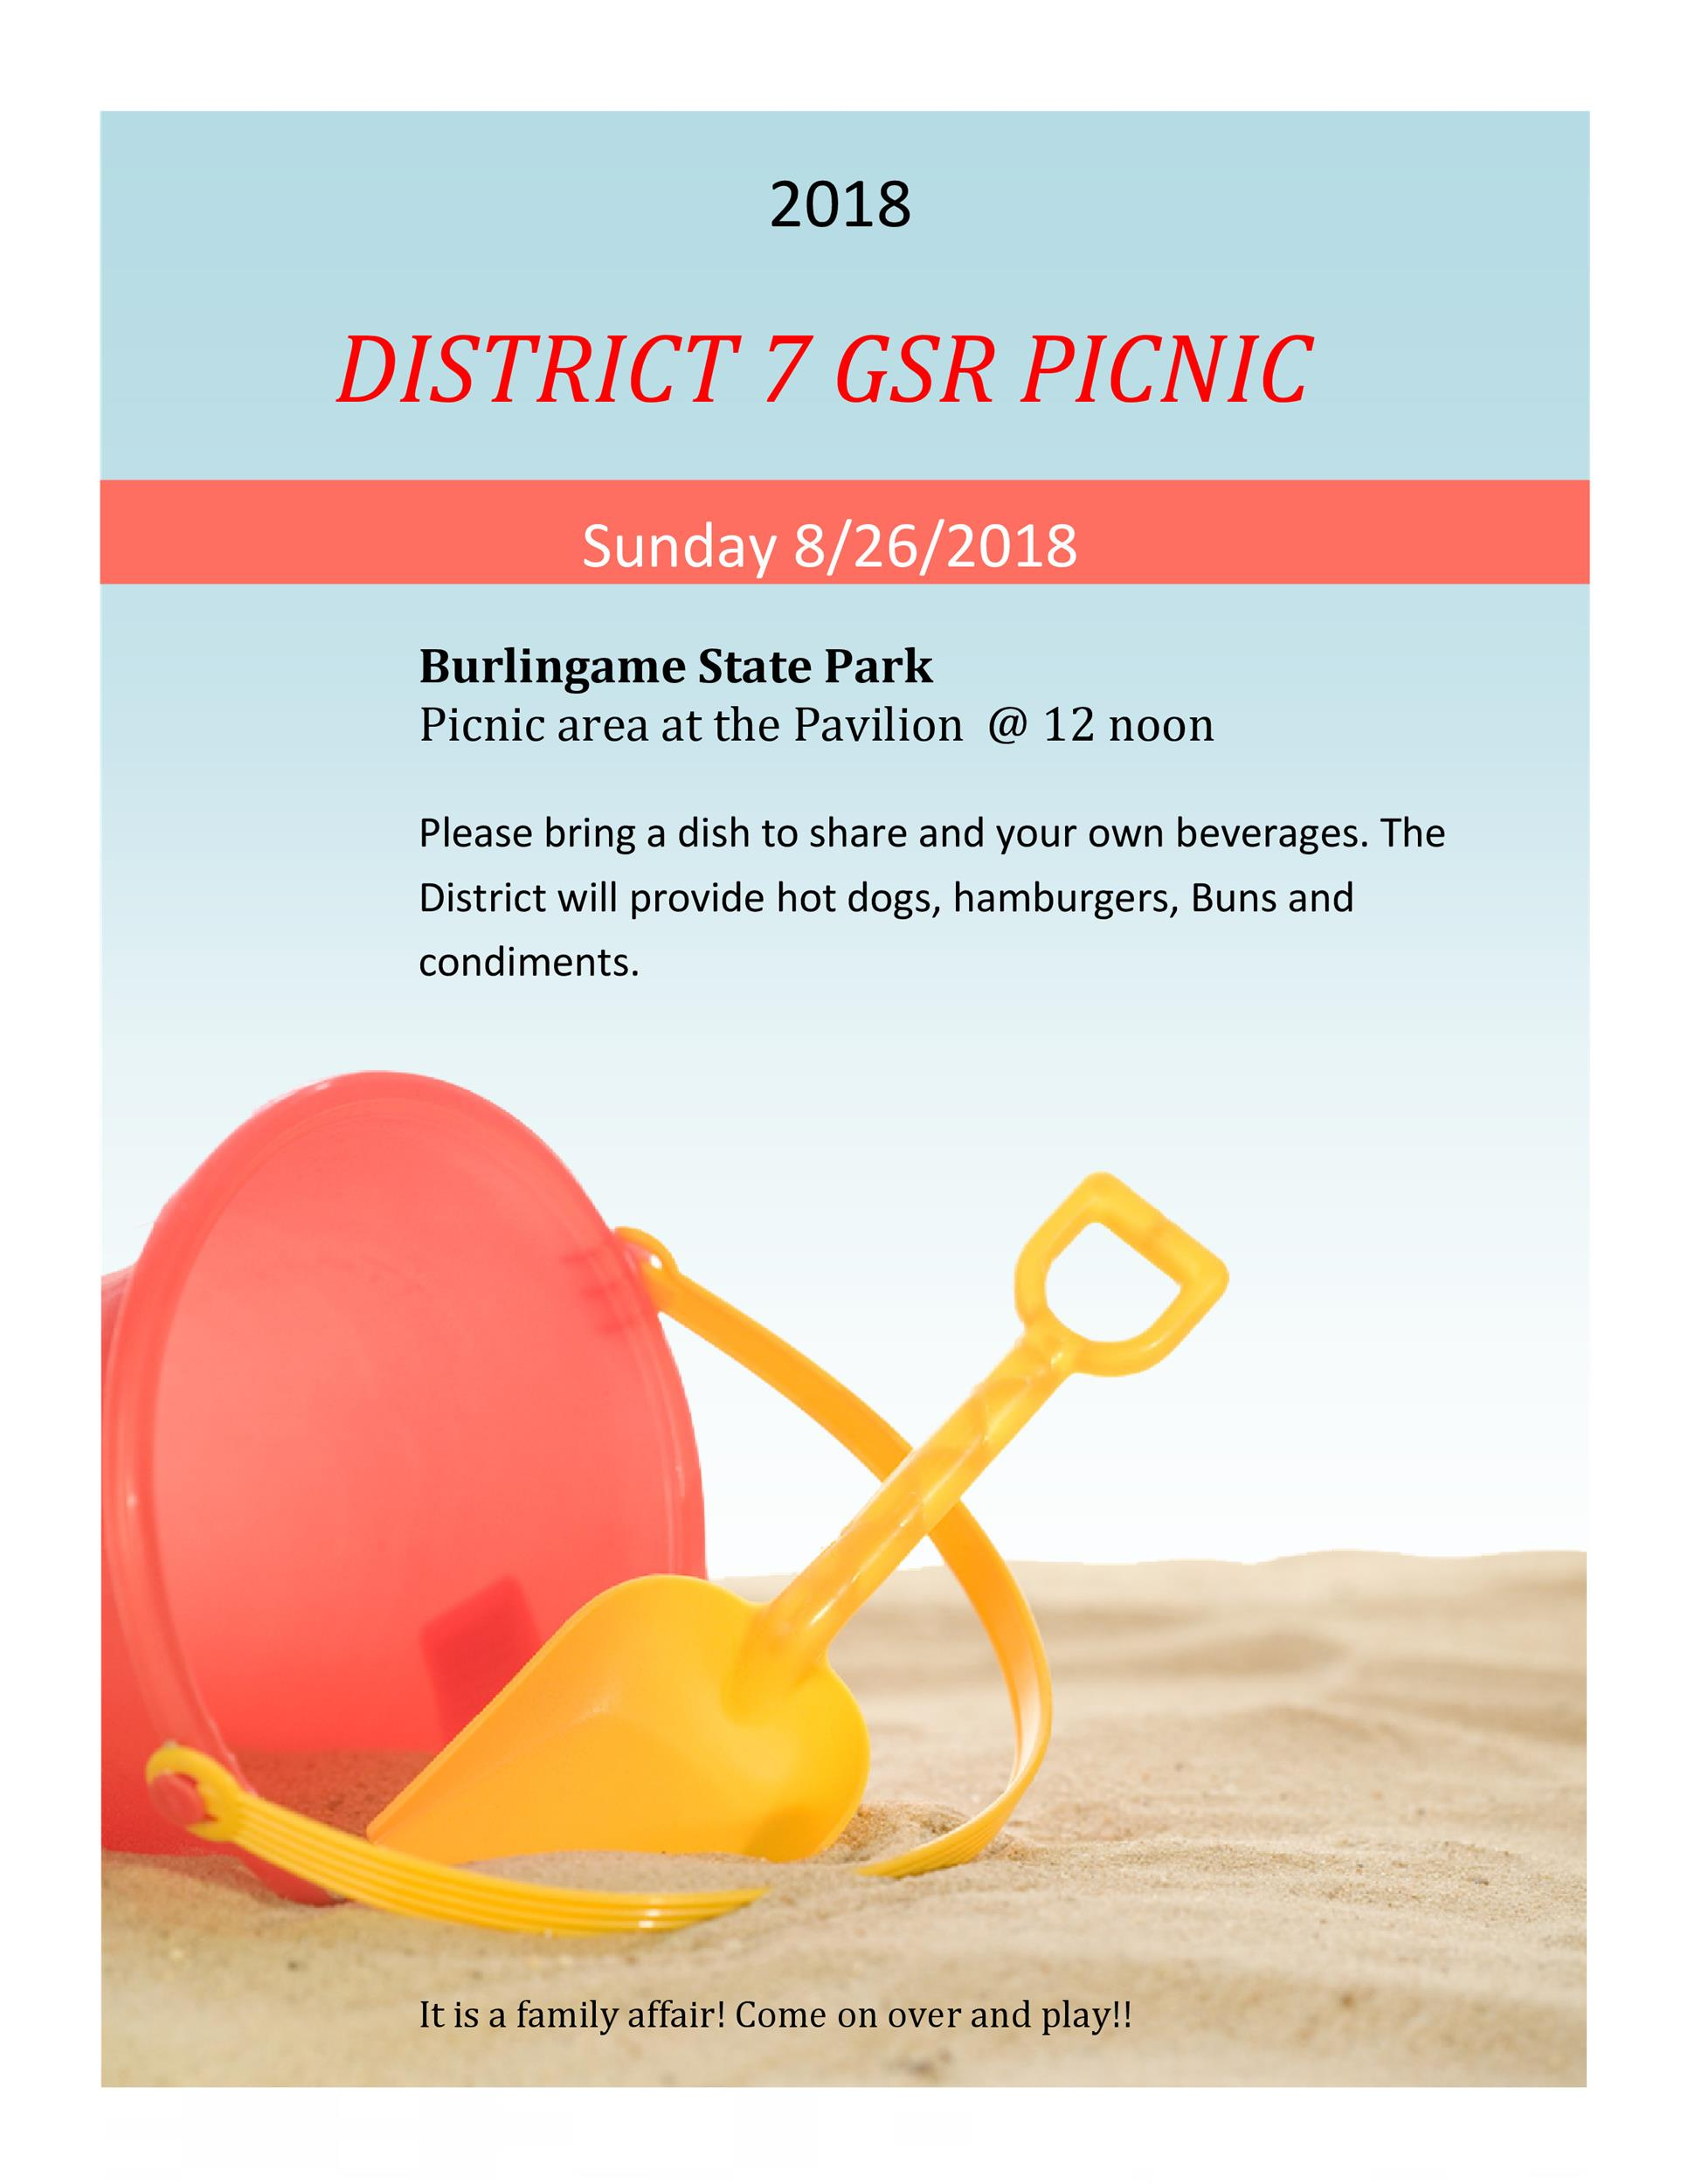 Free picnic flyer template 21